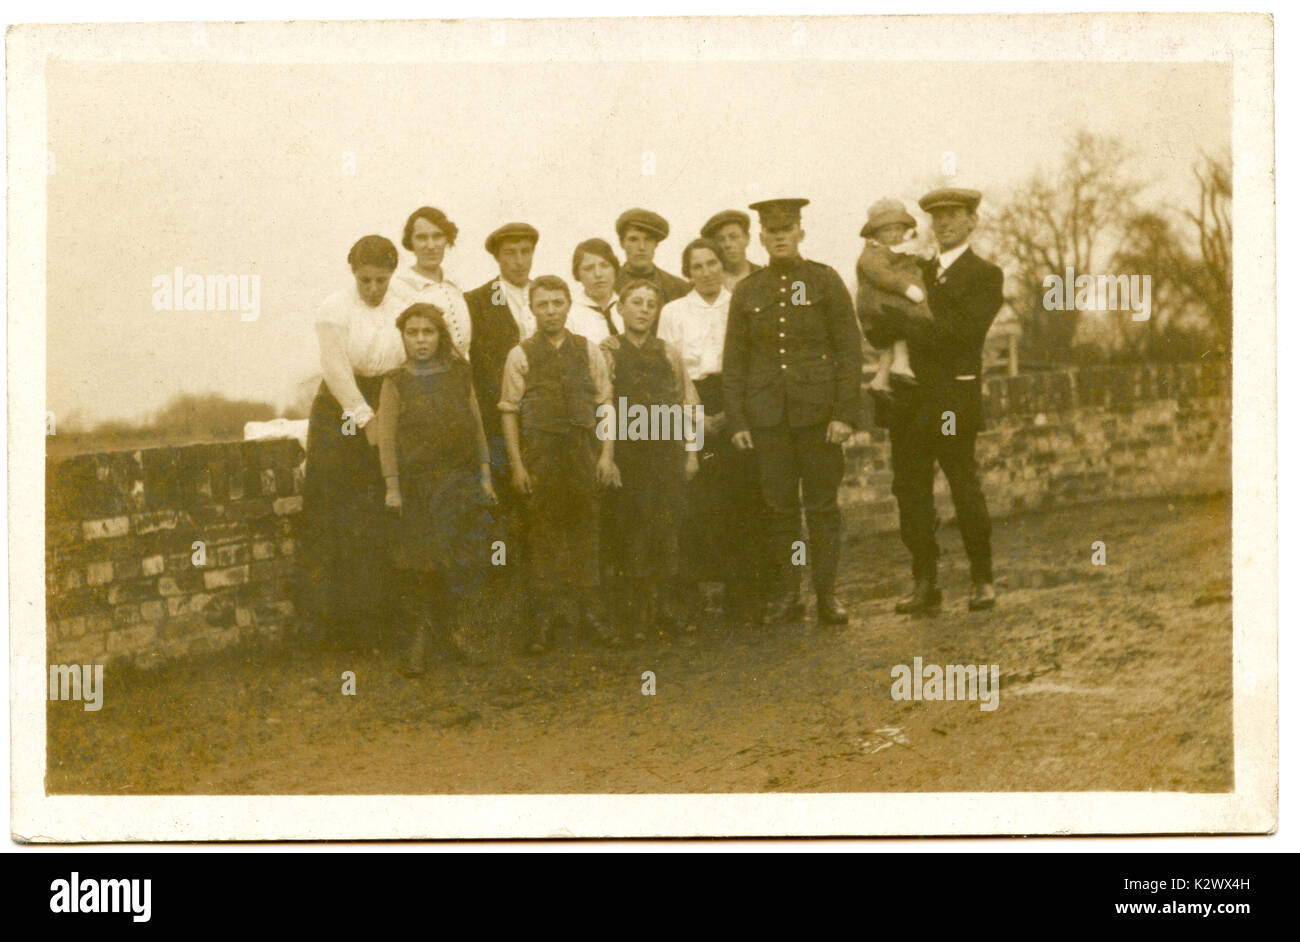 @ 1915, historical photo postcard from Britain, showing a young male soldier in uniform proudly posing with his extended family before heaiding off to fight in WW1. - Stock Image